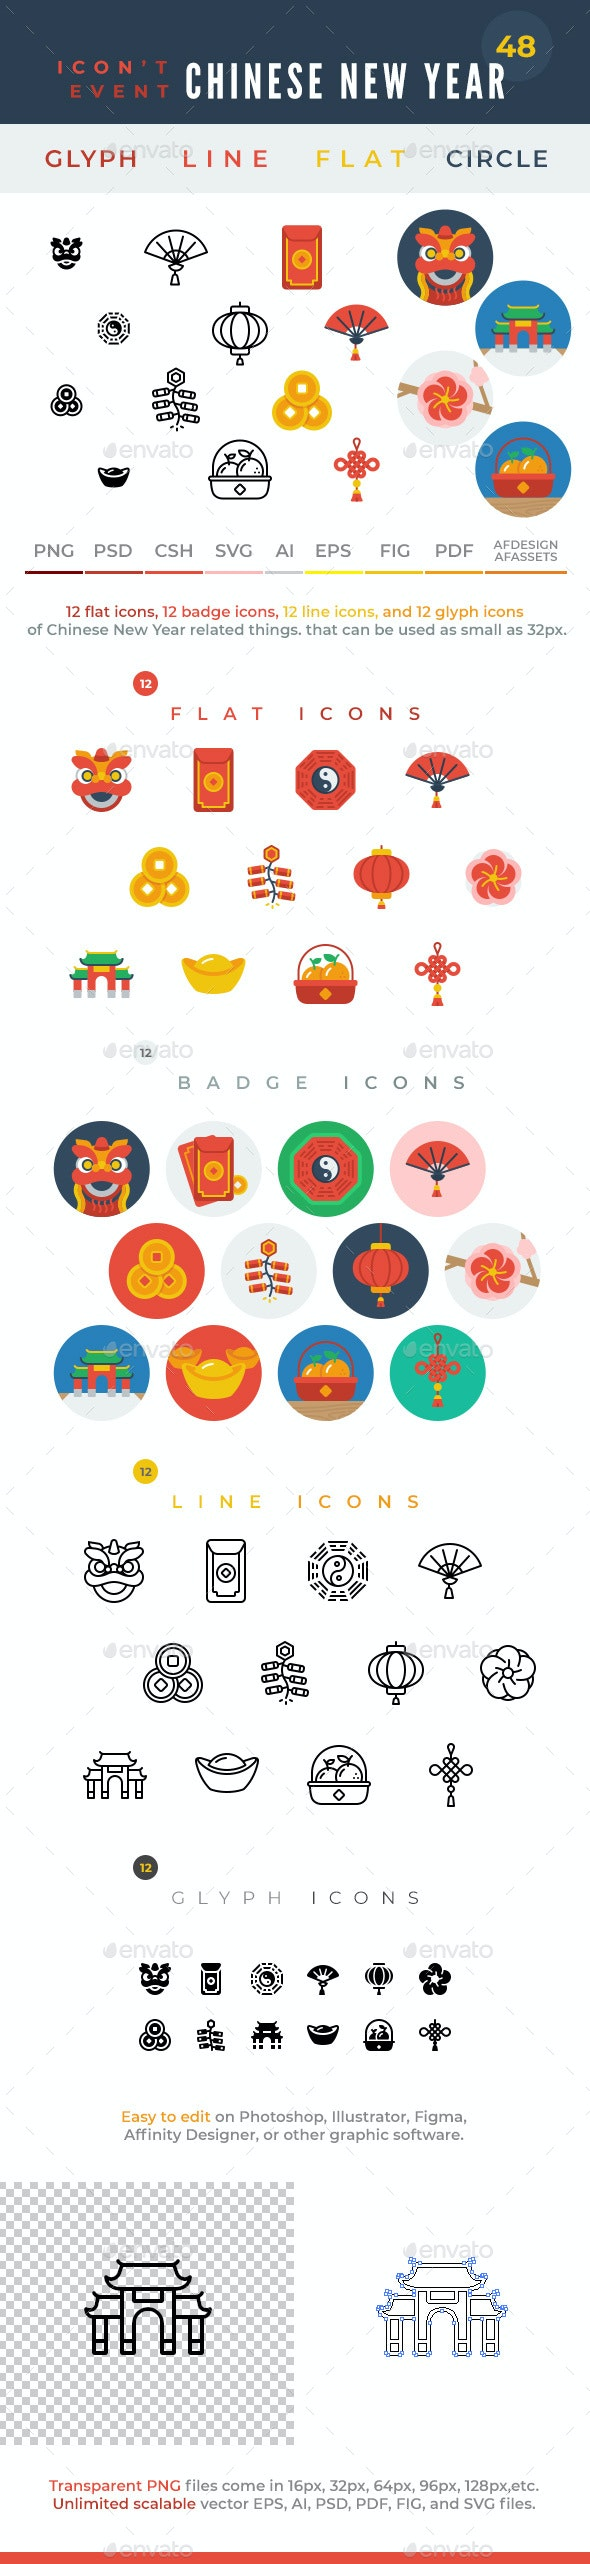 Icon't Event - 48 Chinese New Year Icons - Seasonal Icons